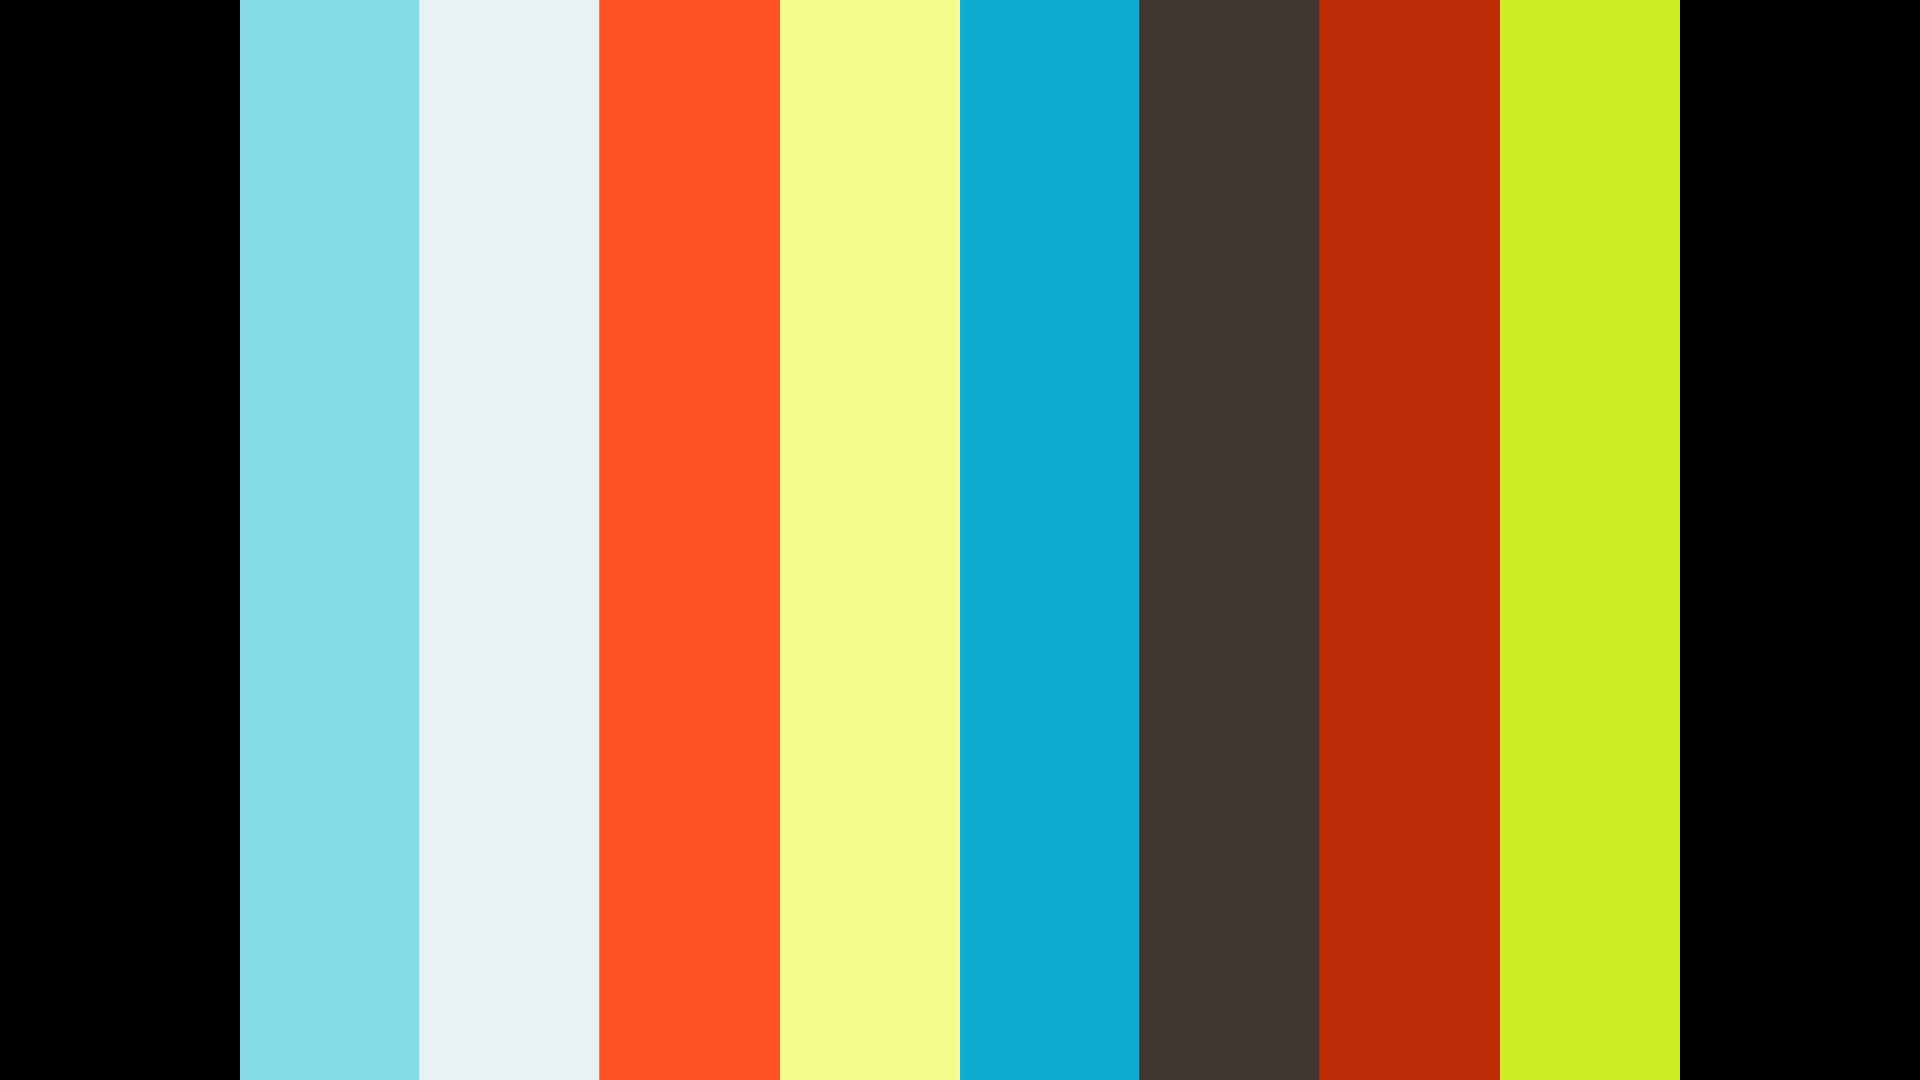 foriio - Intro video